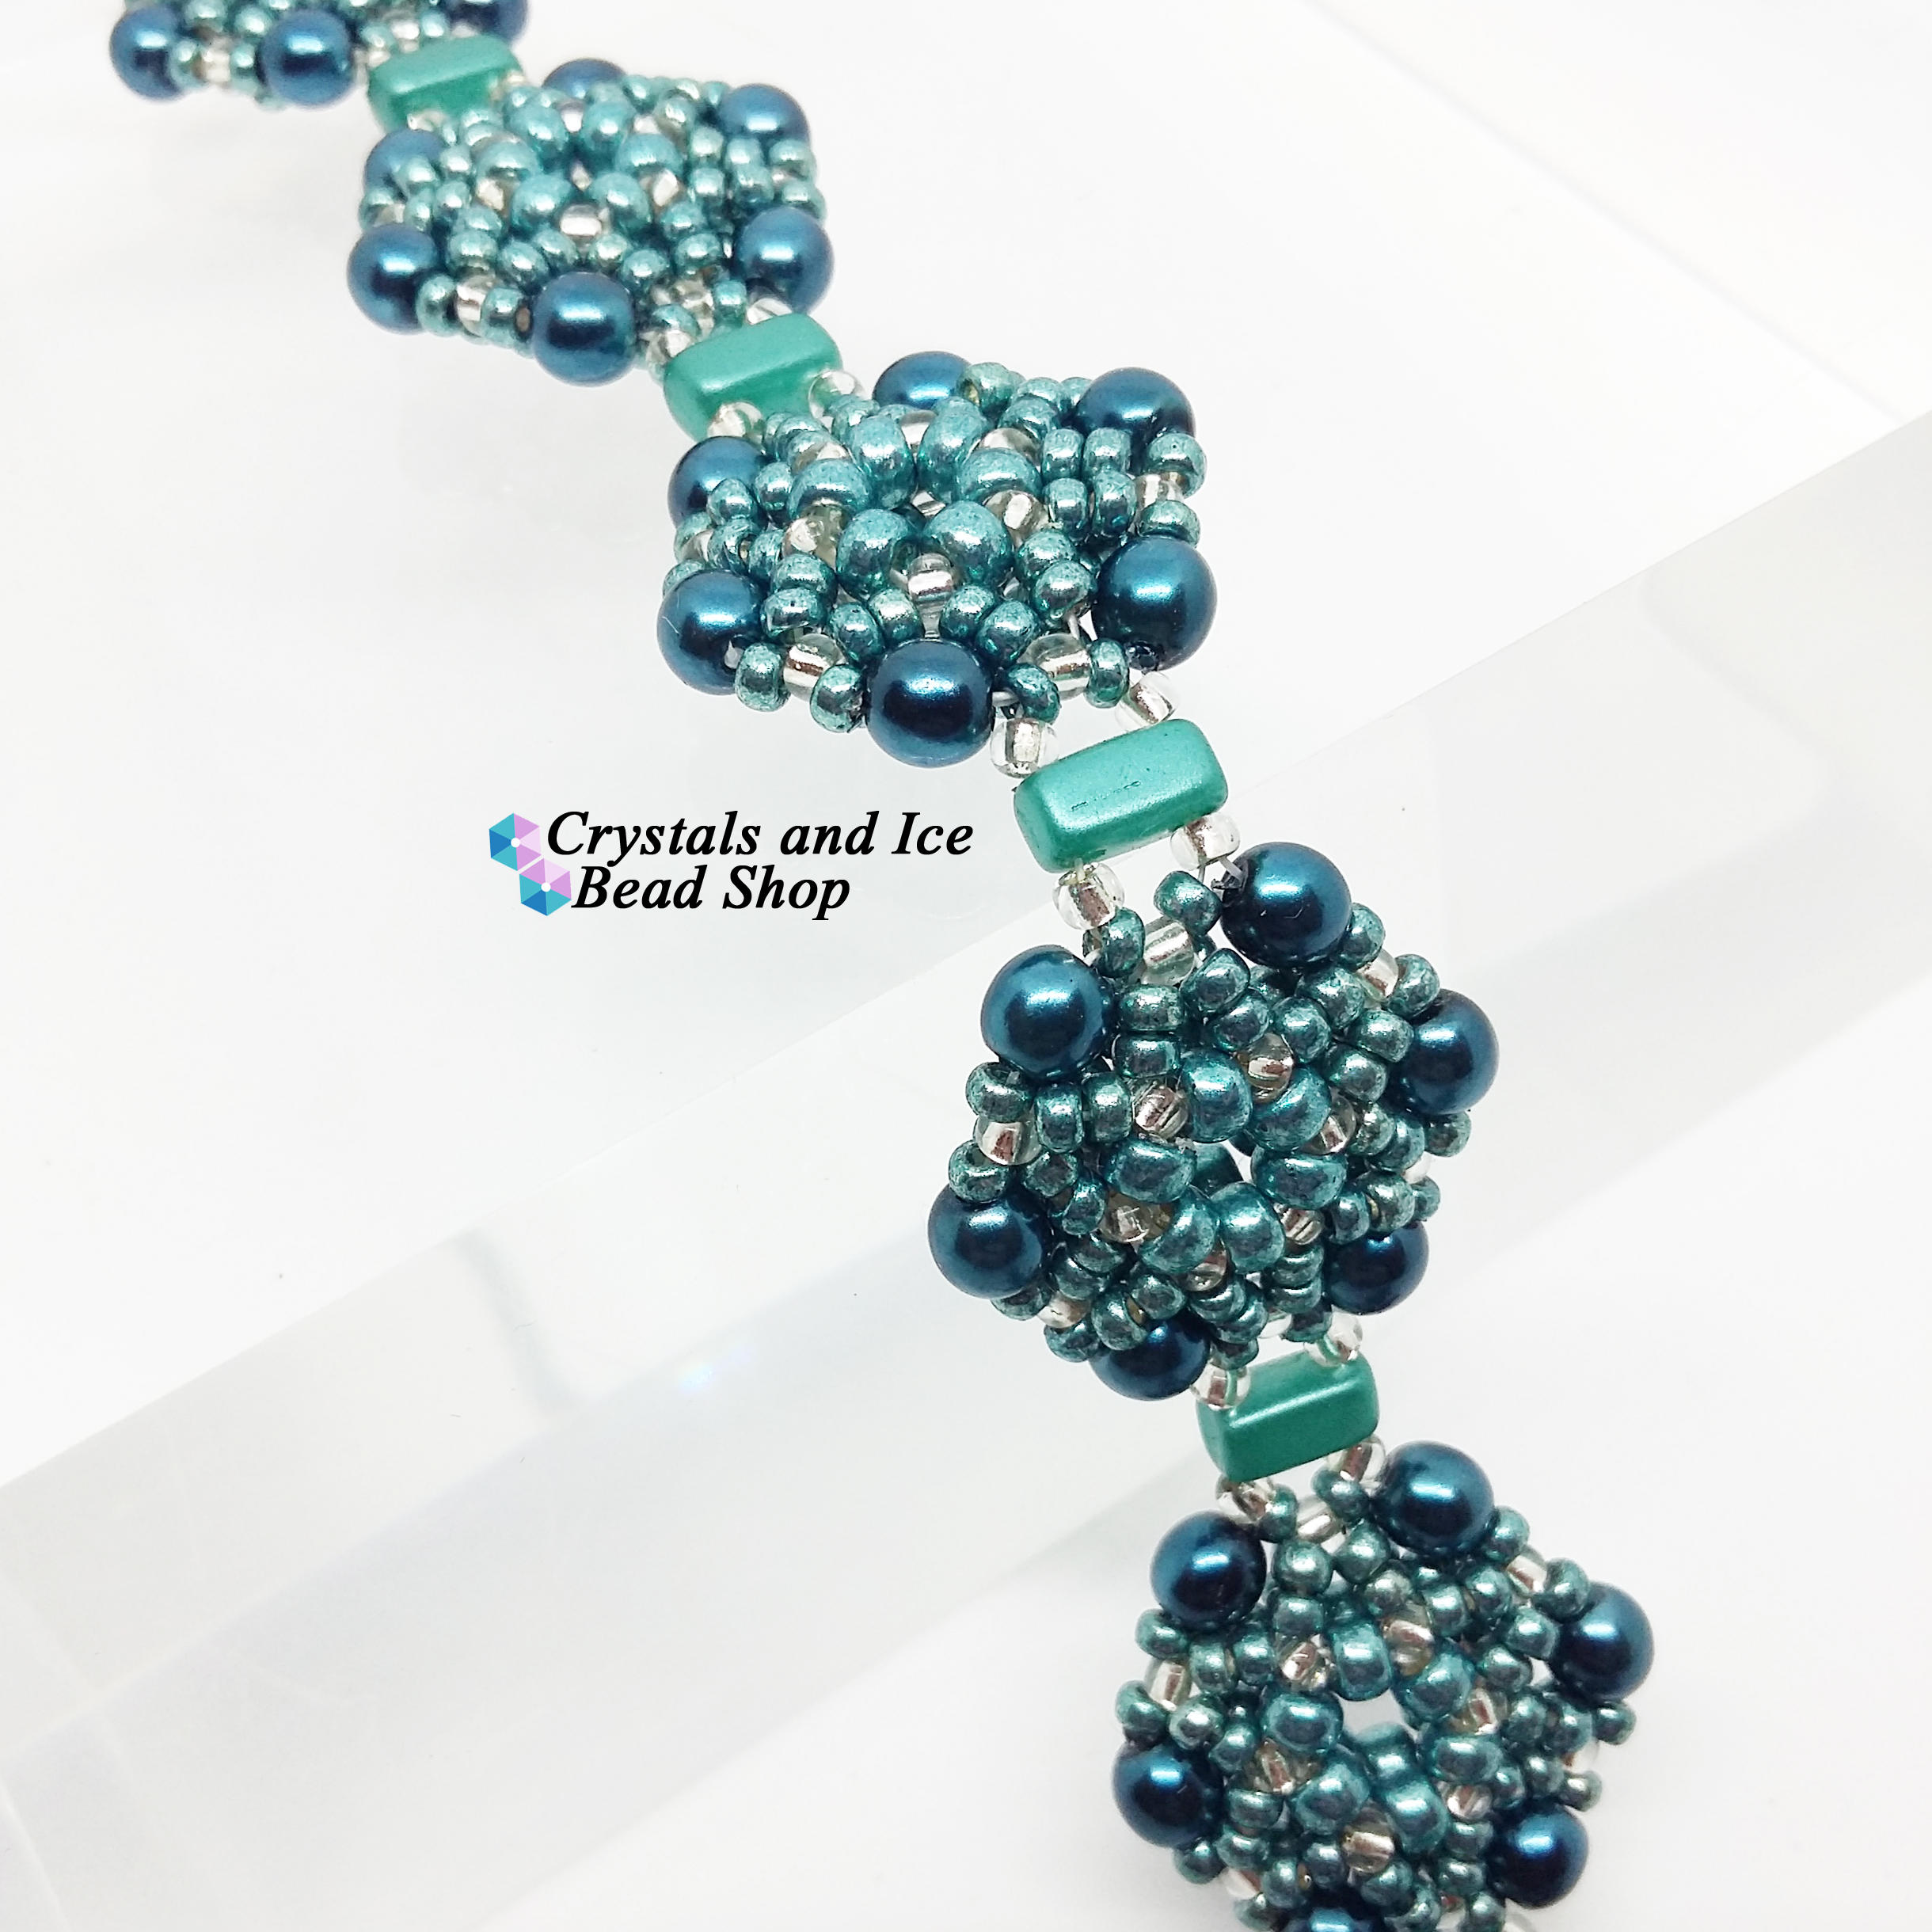 Double Sided Hexagon Bracelet Kit - Pacific